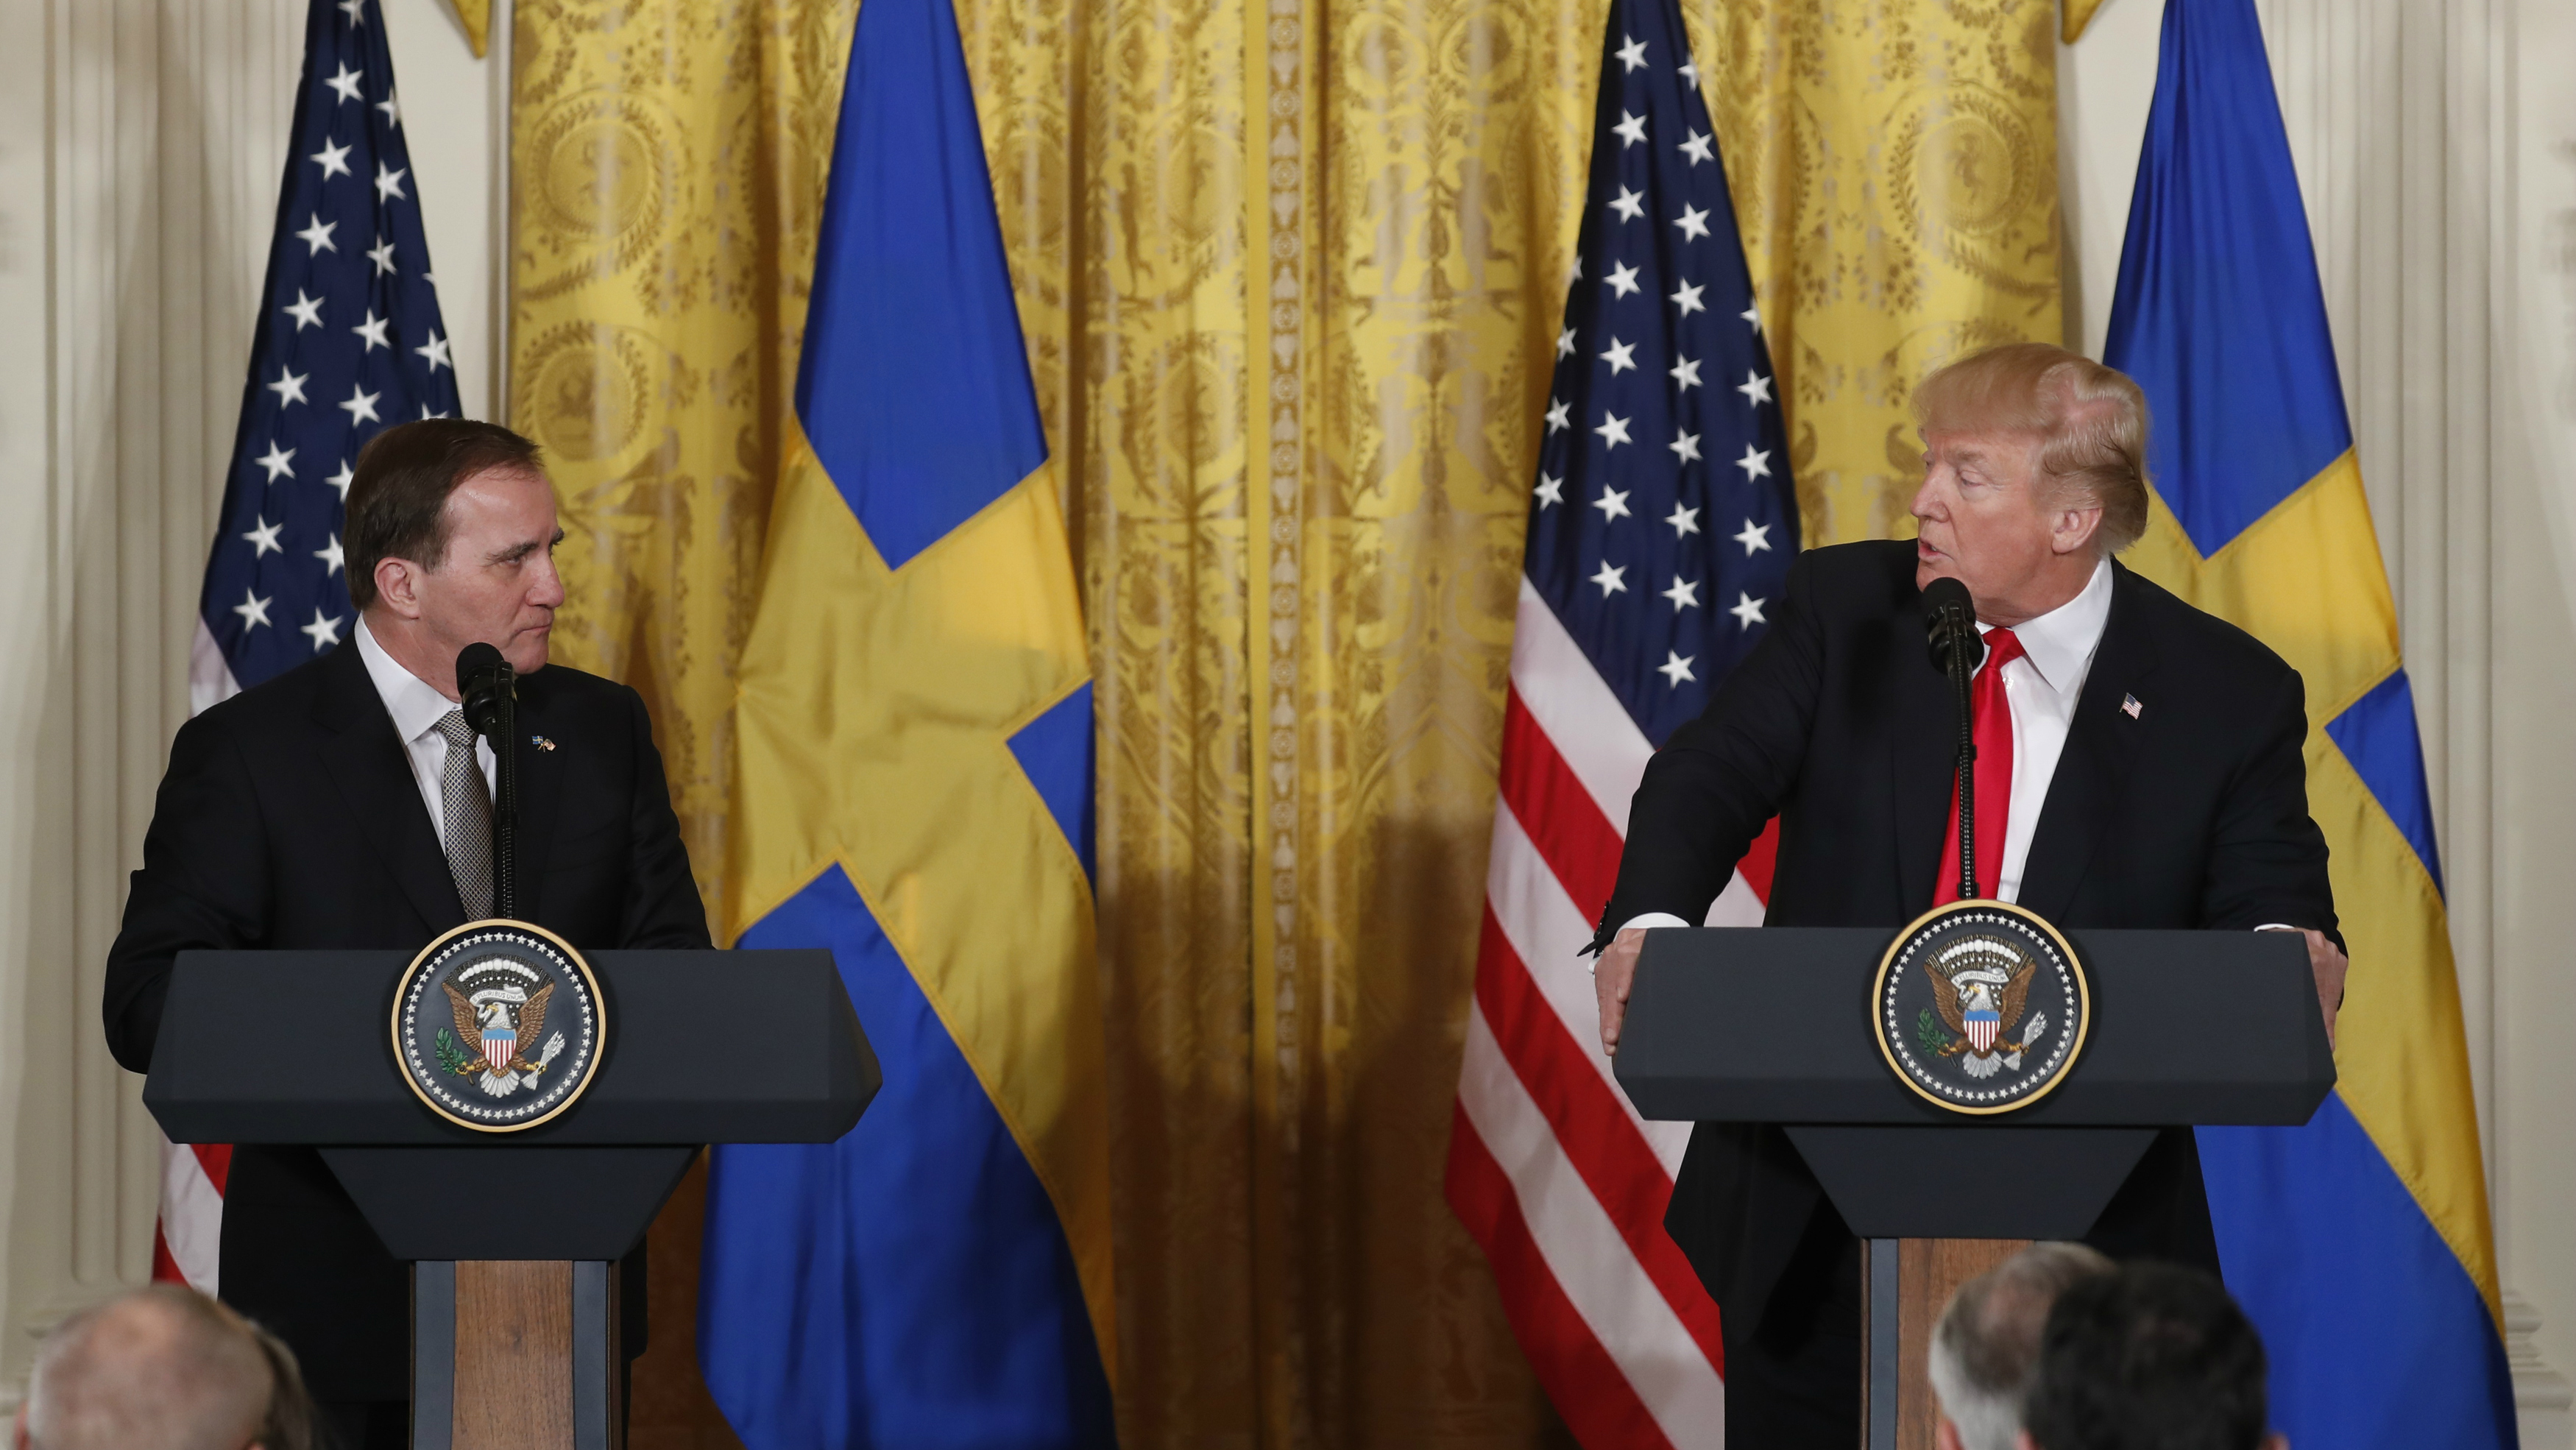 U.S. President Trump and Sweden's Prime Minister Lofven hold joint news conference at the White House